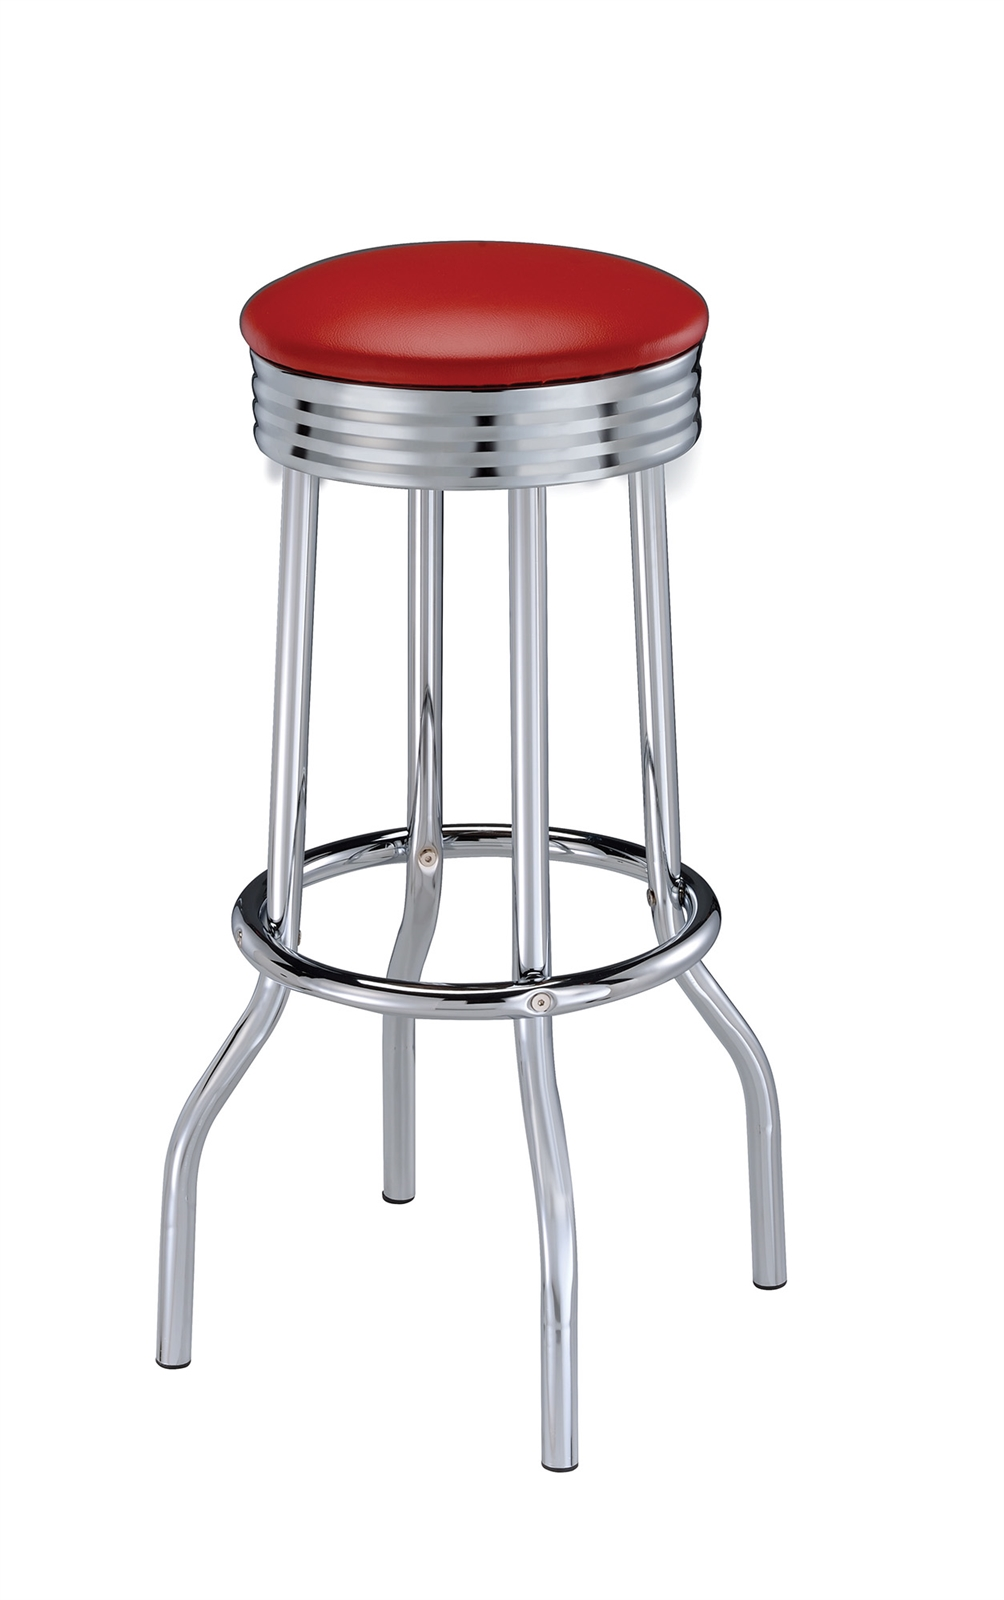 Retro Style Swivel Bar Stools with Chrome Bases & Variety Of Seat Colors